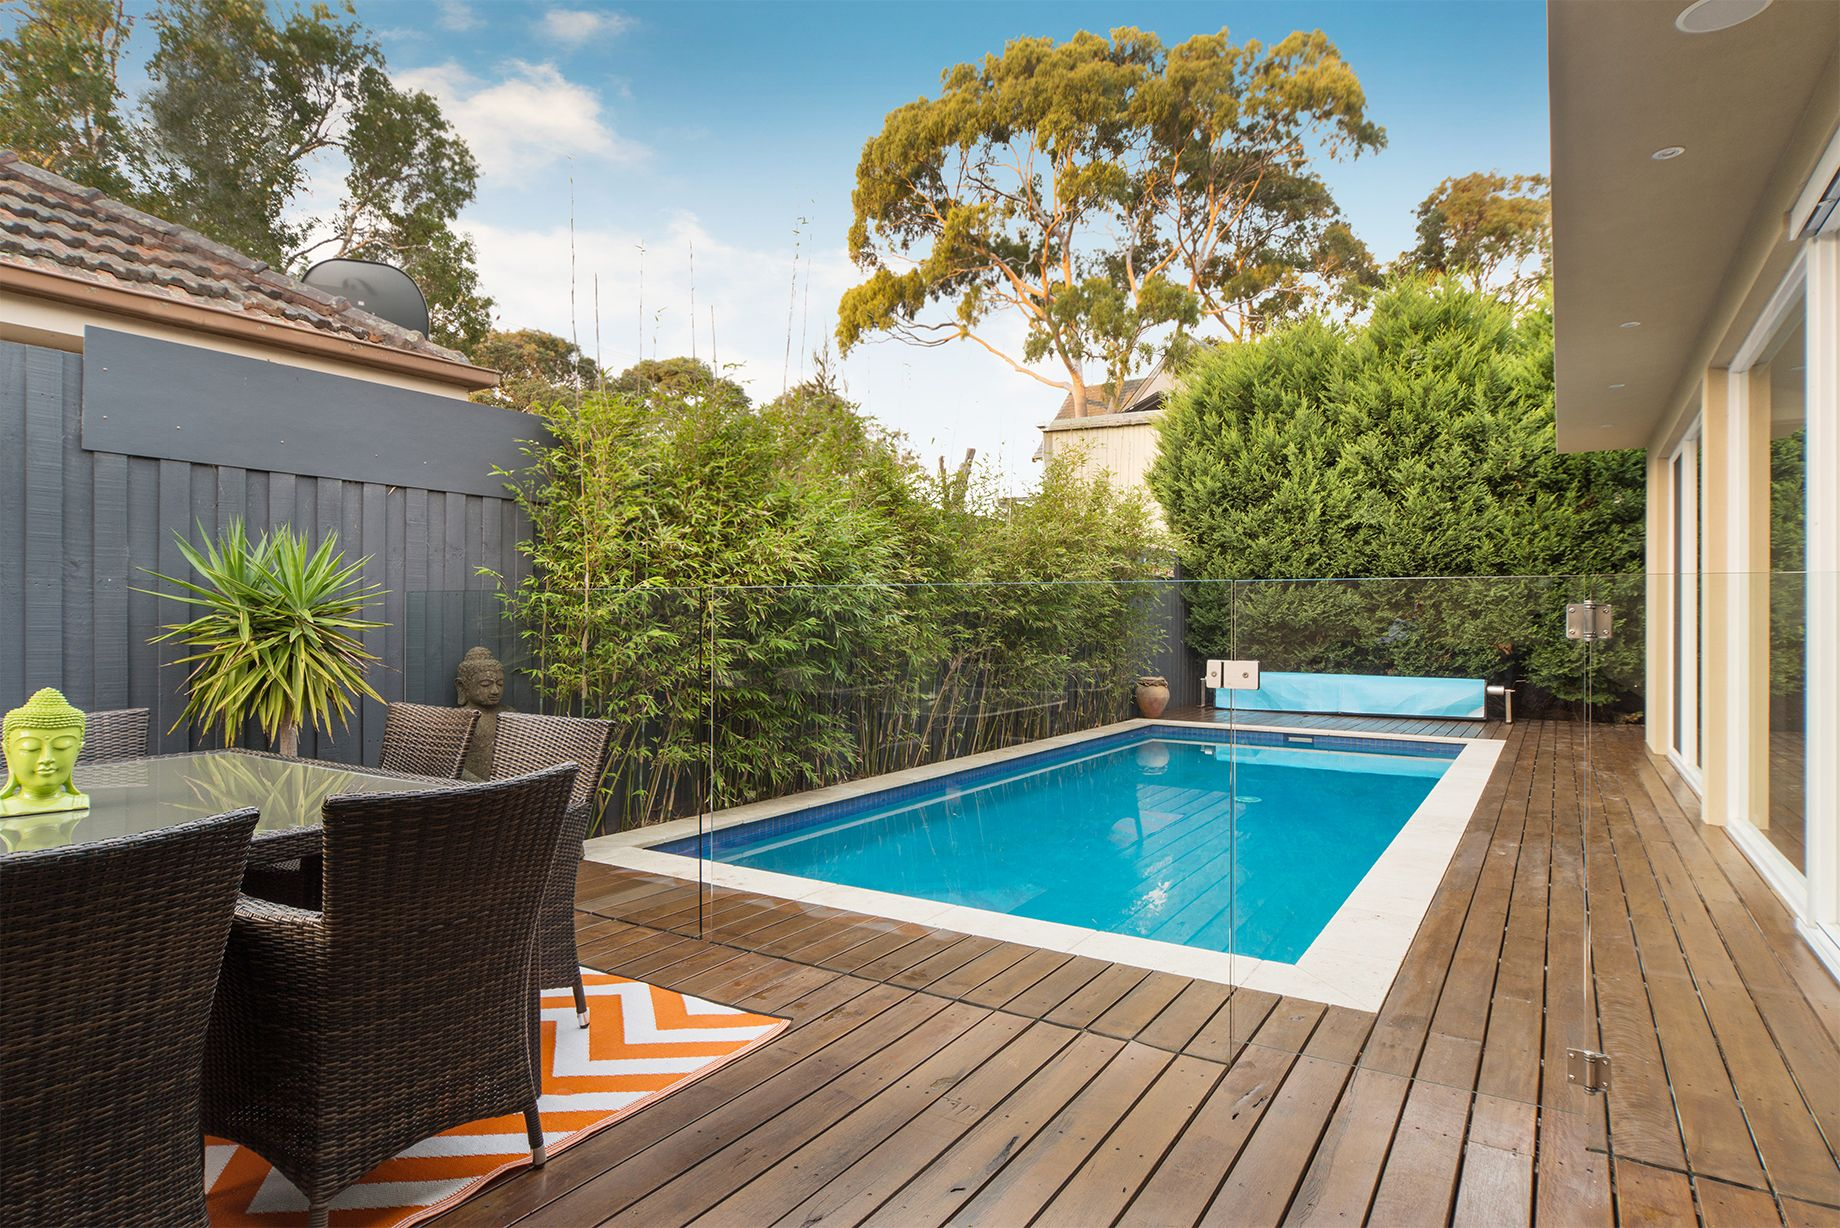 Frameless Channel Pool Fencing Seamless And Easy To Install Glass Panel Pool Fencing Is An Excellent Addition To Any Outdo Pool Fence Glass Pool Fencing Pool